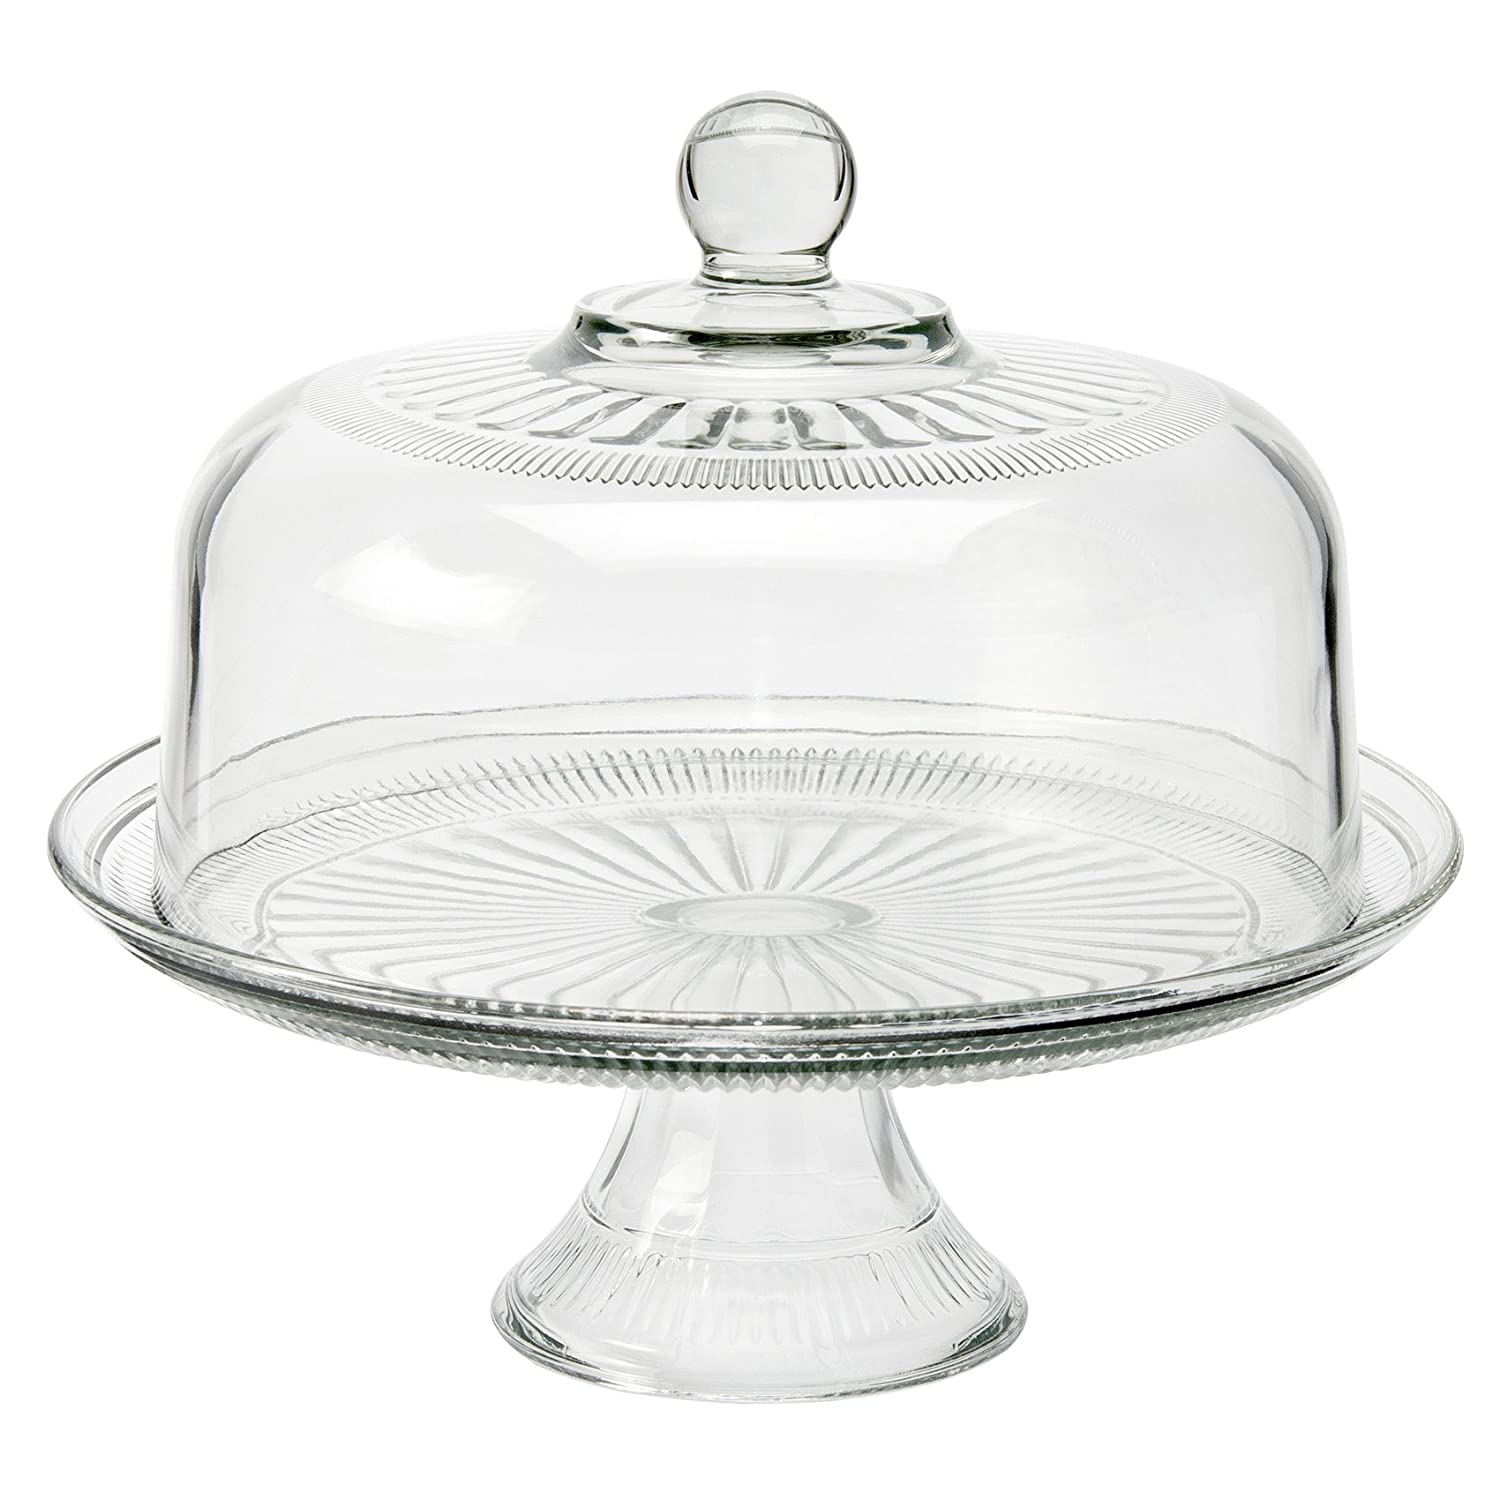 Anchor Hocking Annapolis 2 In 1 Glass Cake Stand & Dome Set Punch